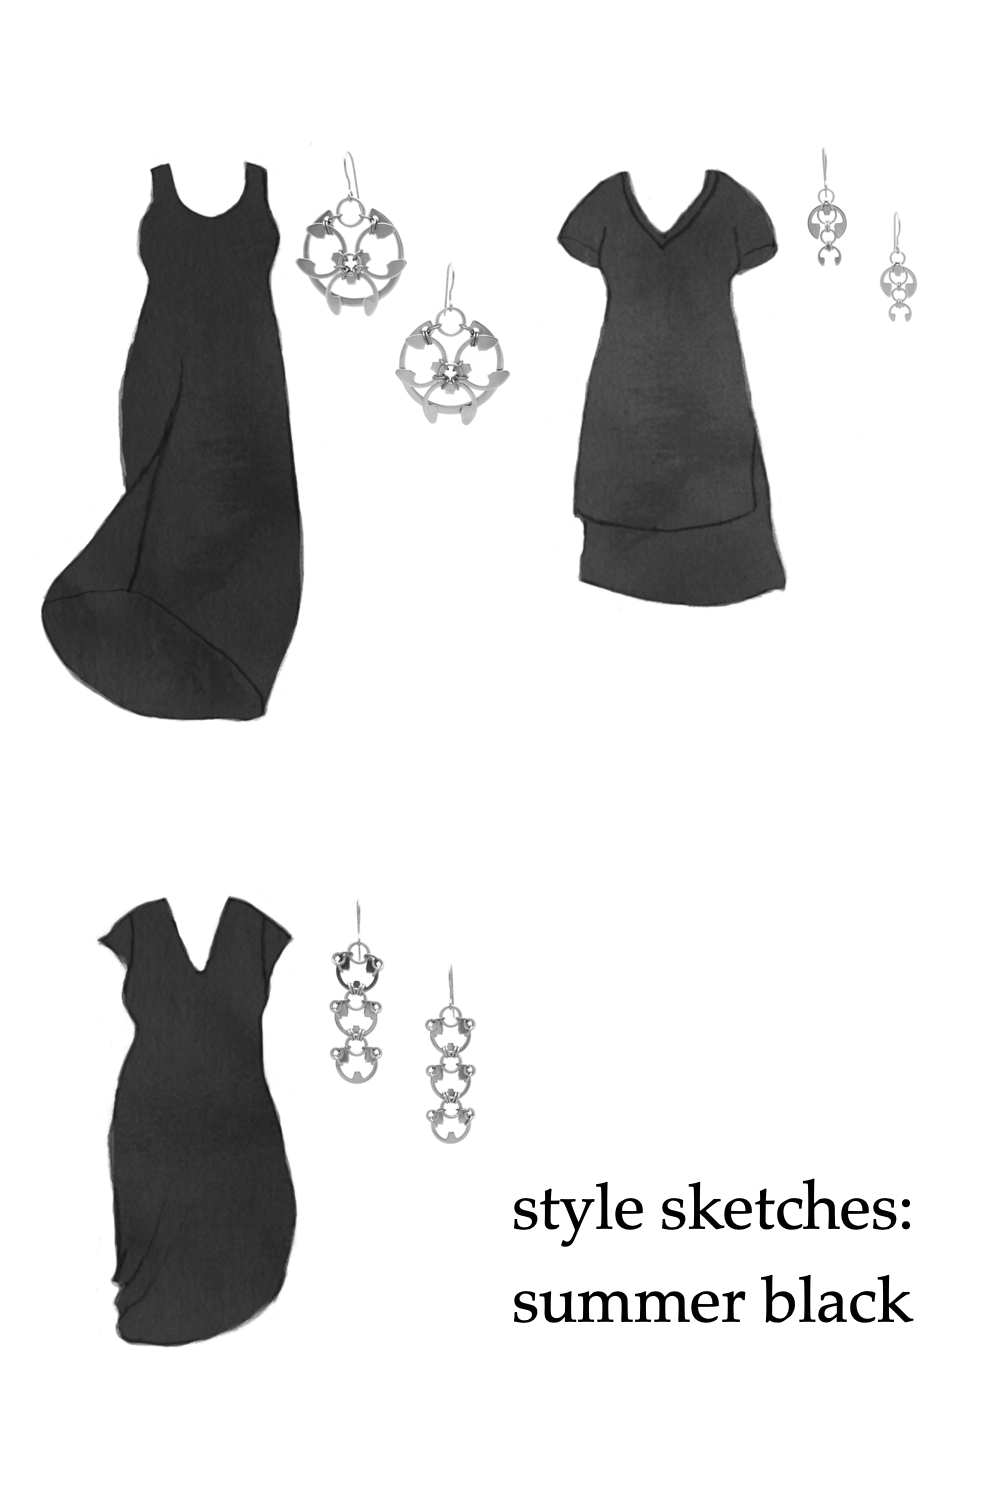 Compilation of three outfit ideas, featuring sketches of knit dresses by Universal Standard and modern floral earrings by Wraptillion. Text on image reads: style sketches: summer black.